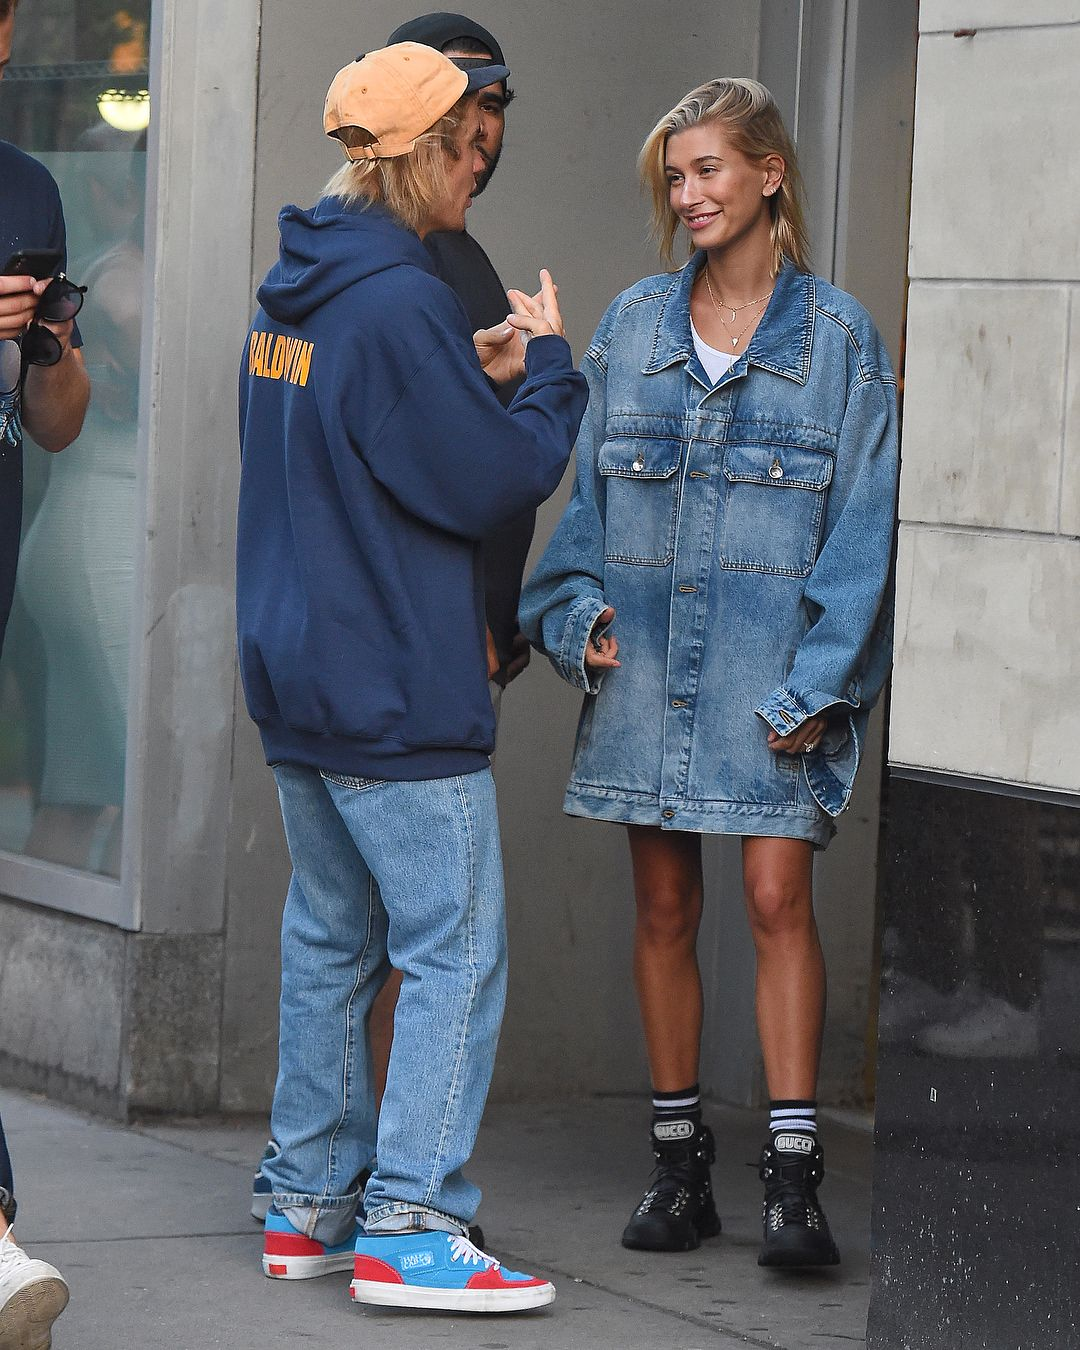 July 2 | Hailey baldwin, Hailey baldwin news, Hailey